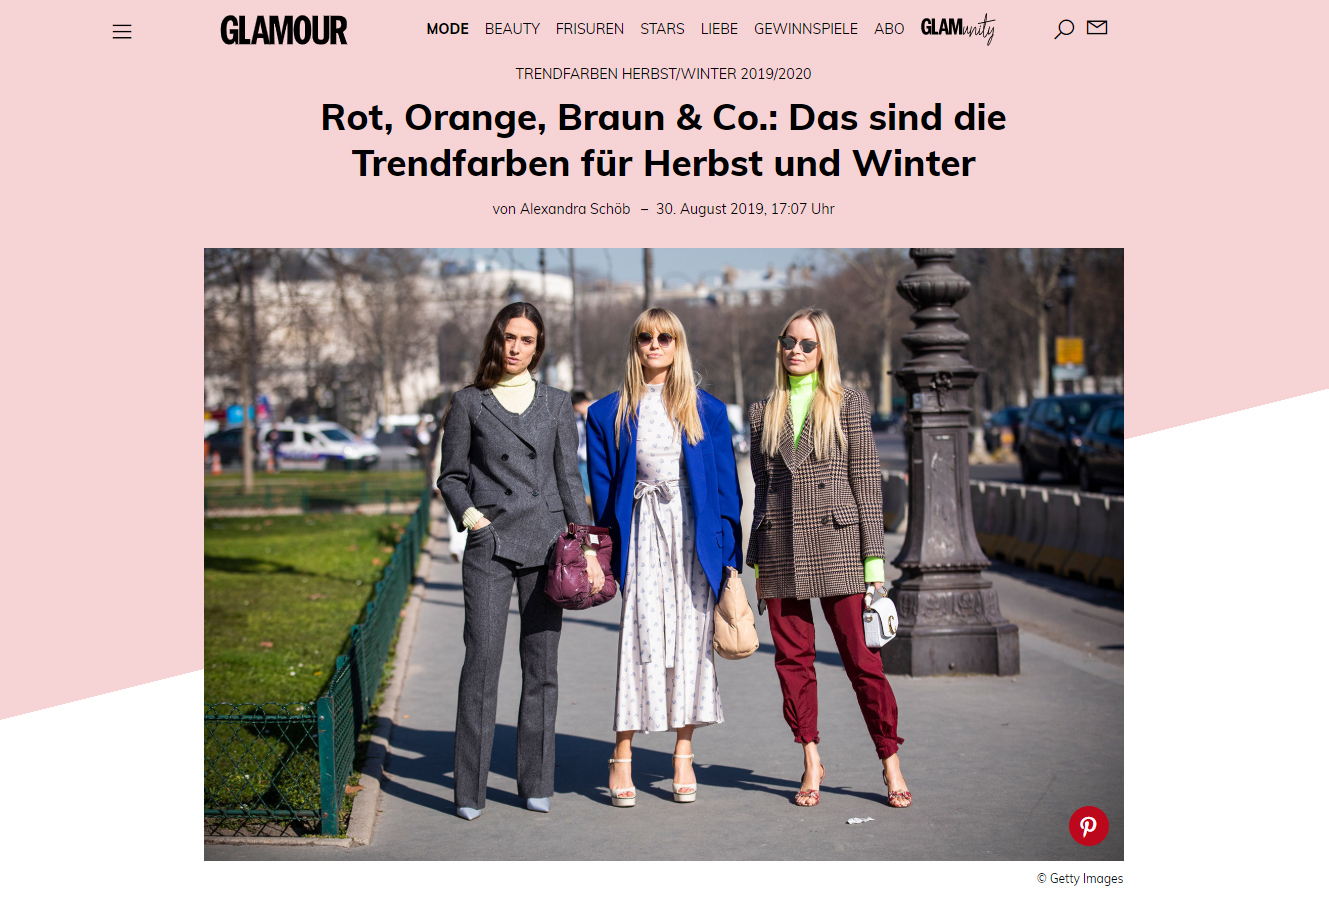 Glamour-Beitrag-Trendfarben5d94a8abd46f2